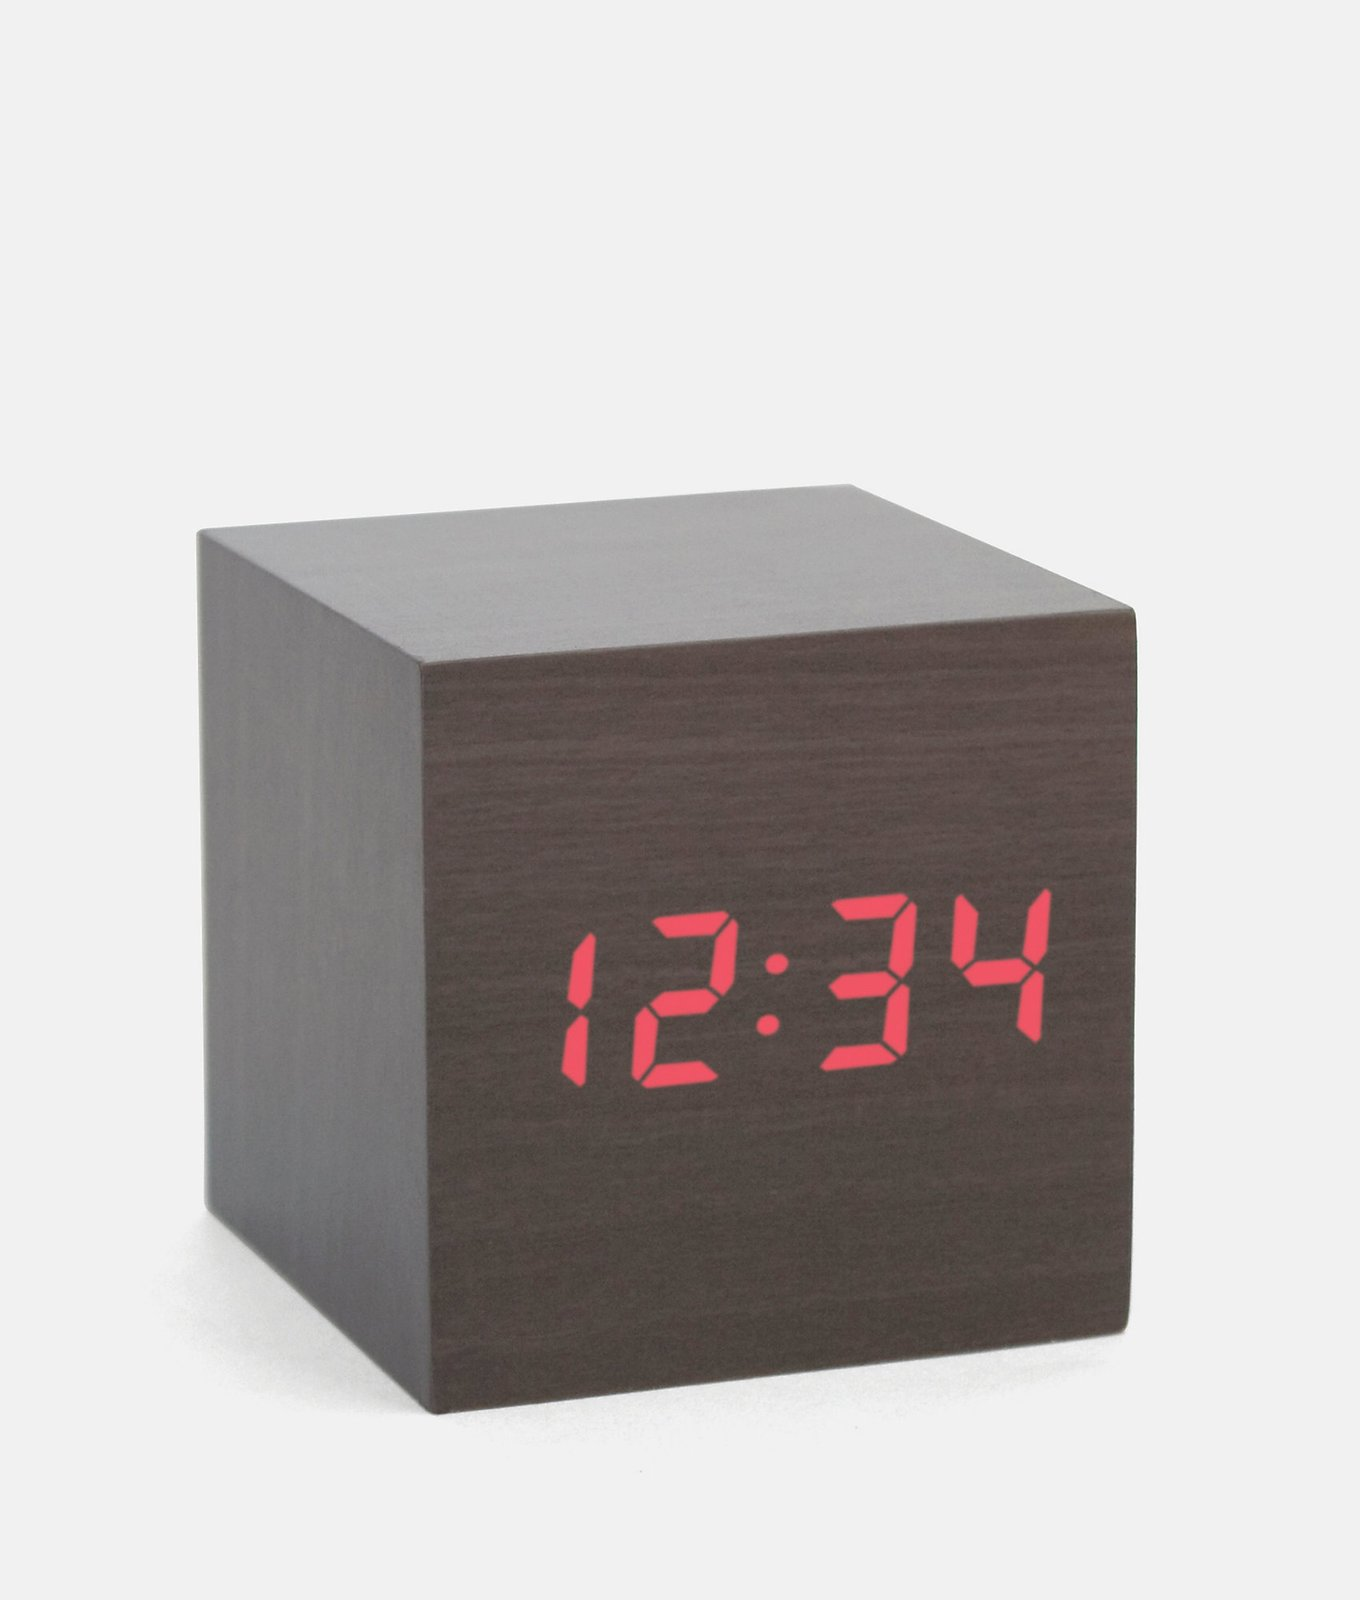 A minimalist LED clock activated by the clap of your hands. Jack Spade Cube Alarm Clock, $30  Photo 3 of 12 in Stocking Stuffers That Will Please the Modernists in Your Life